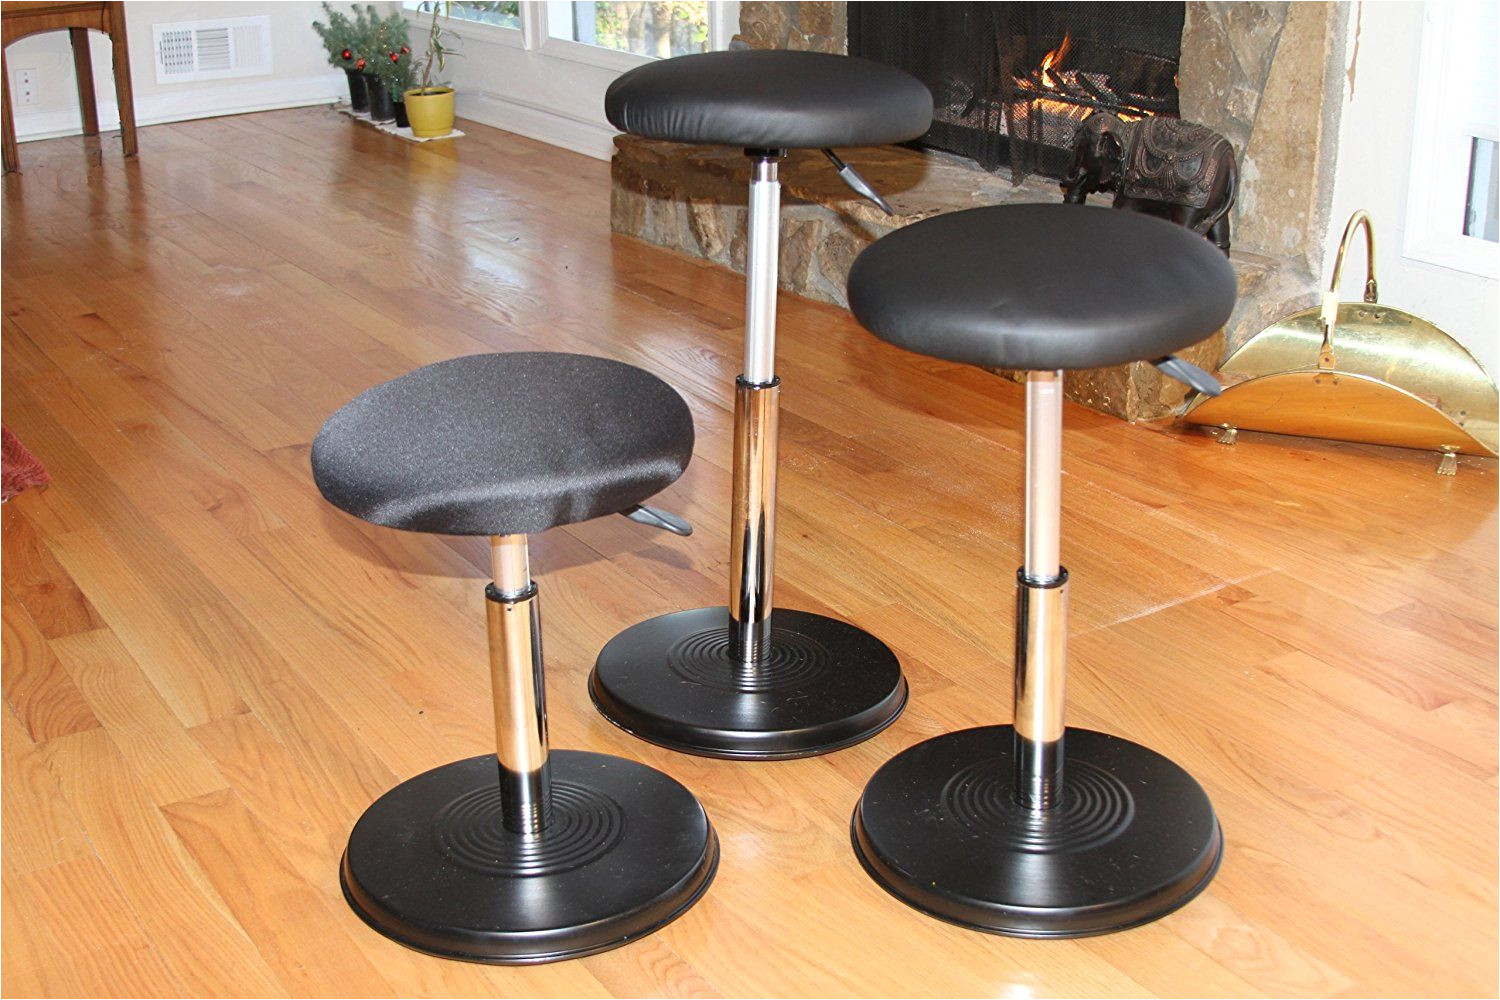 amazon com kore executive hi rise wobble chair stool for office great